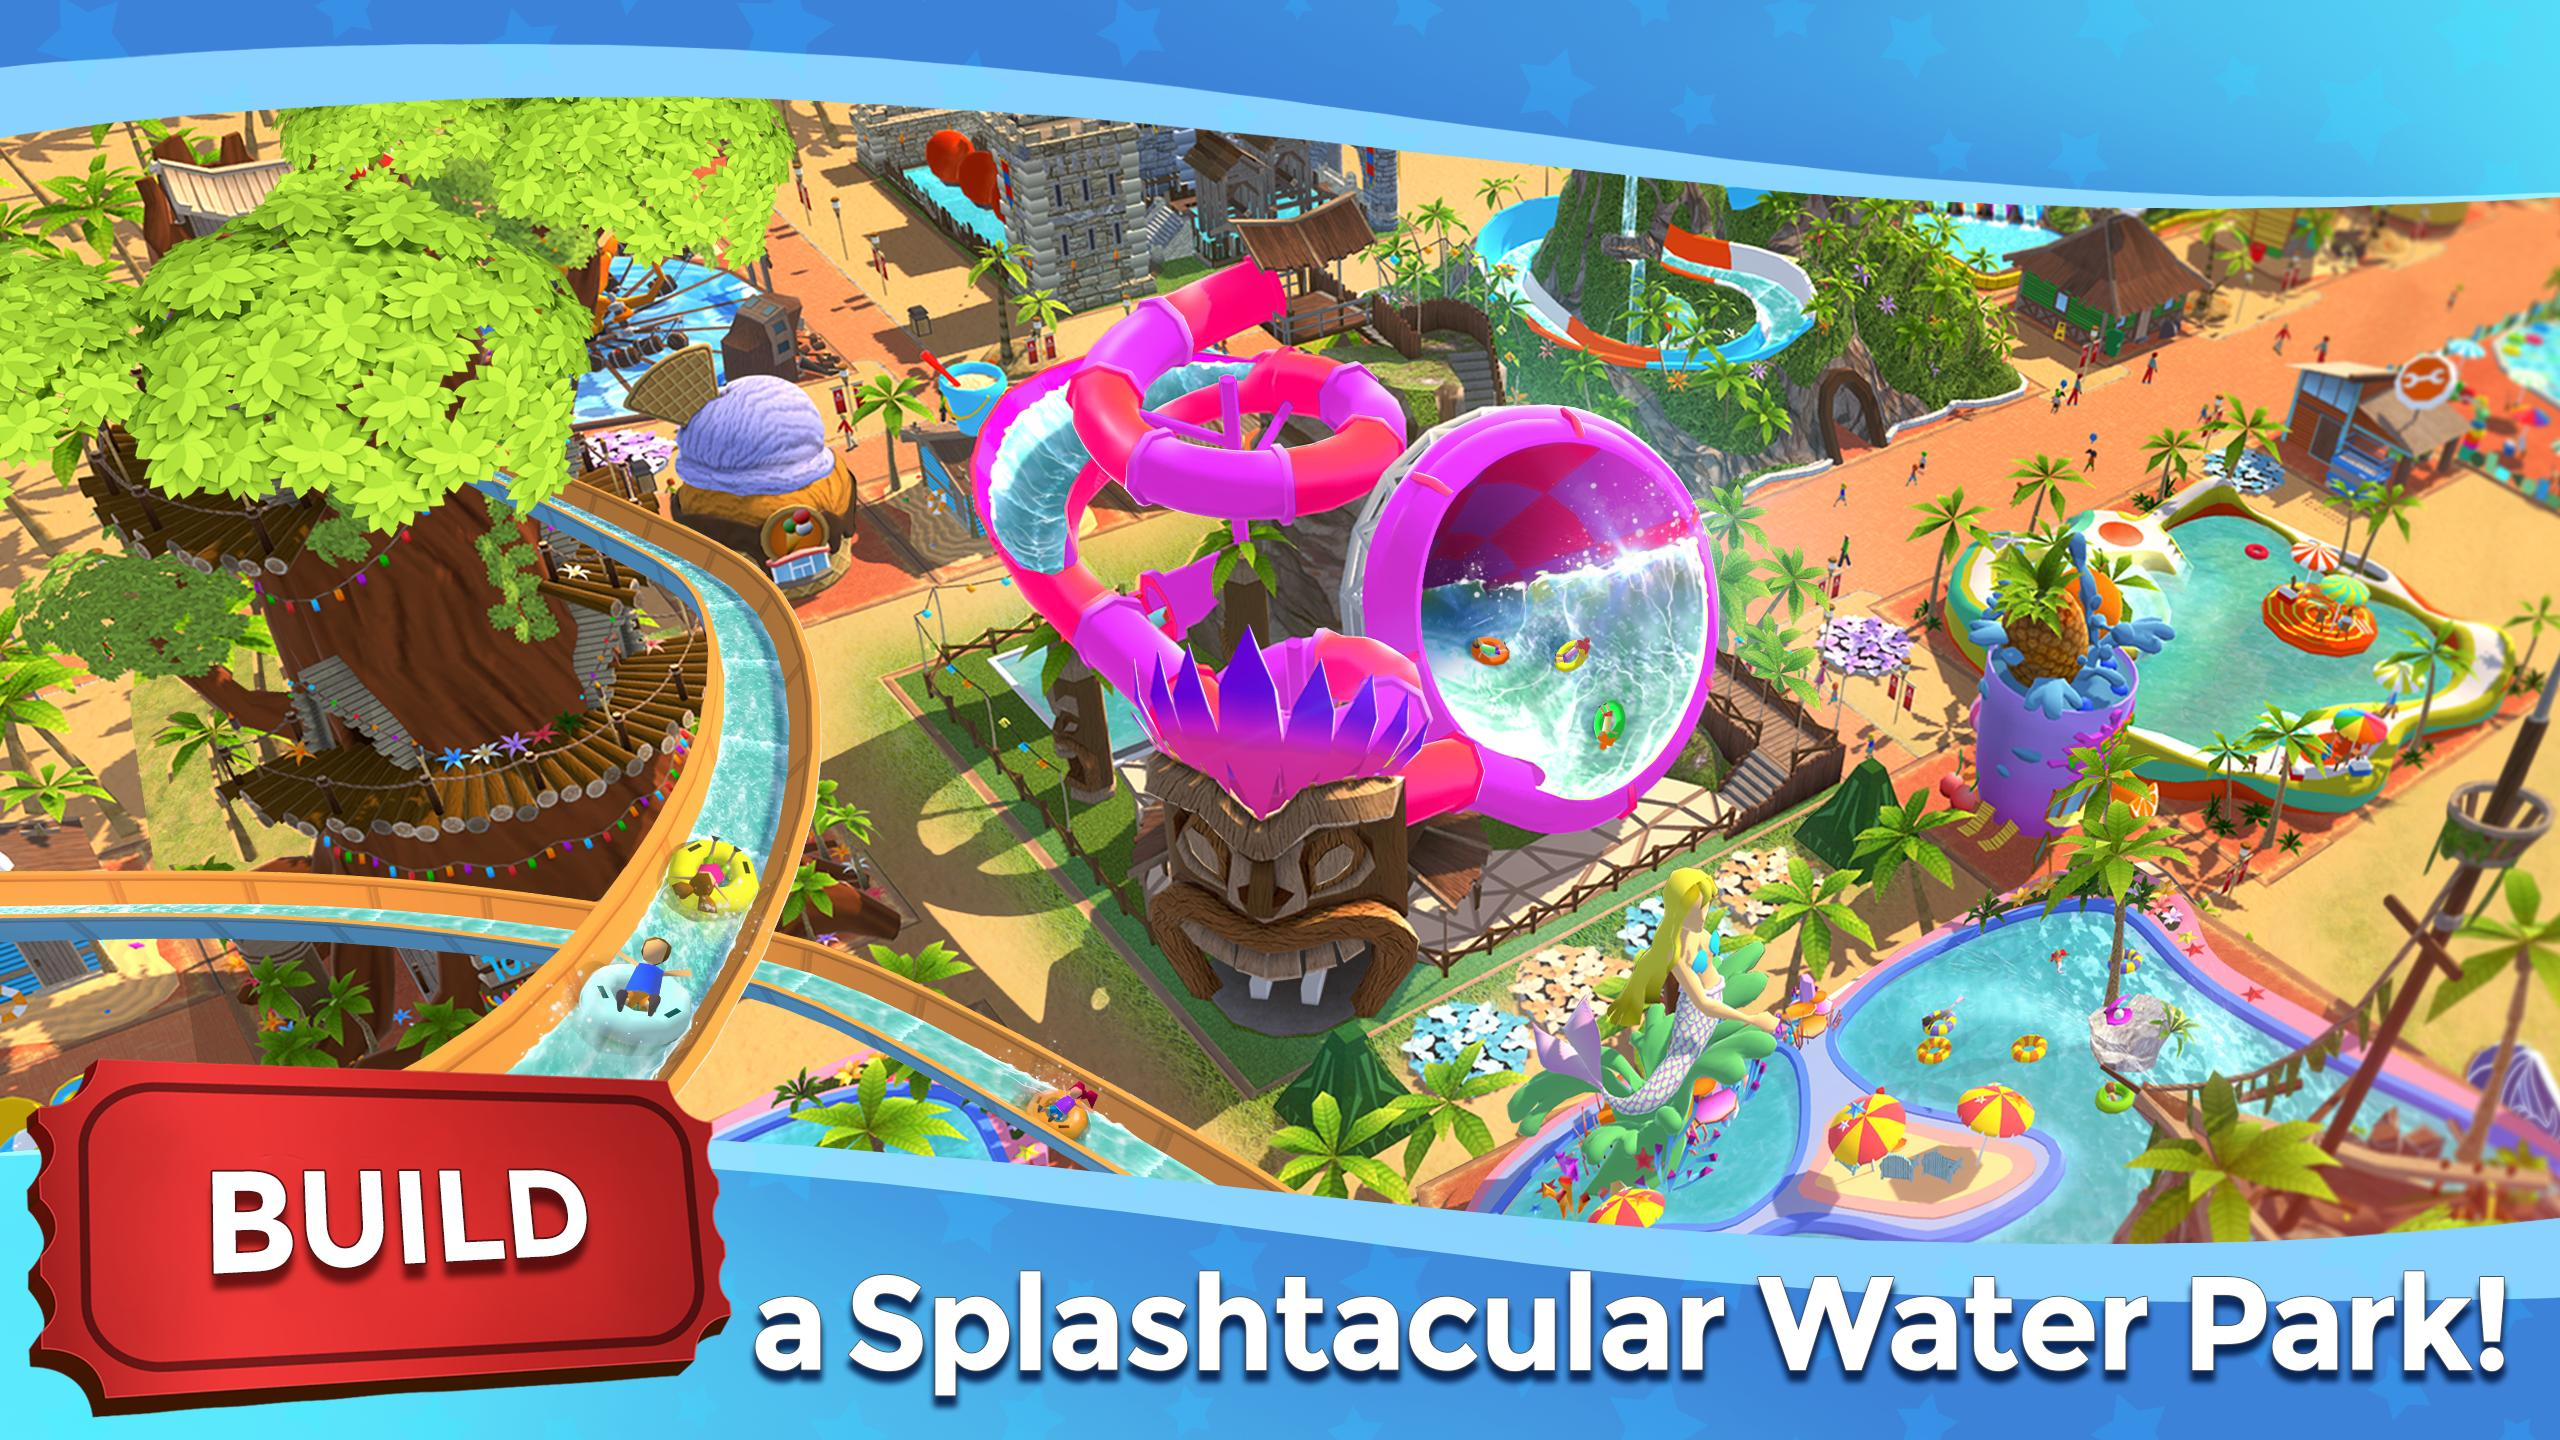 RollerCoaster Tycoon Touch - Build your Theme Park 3.5.0 Screenshot 4